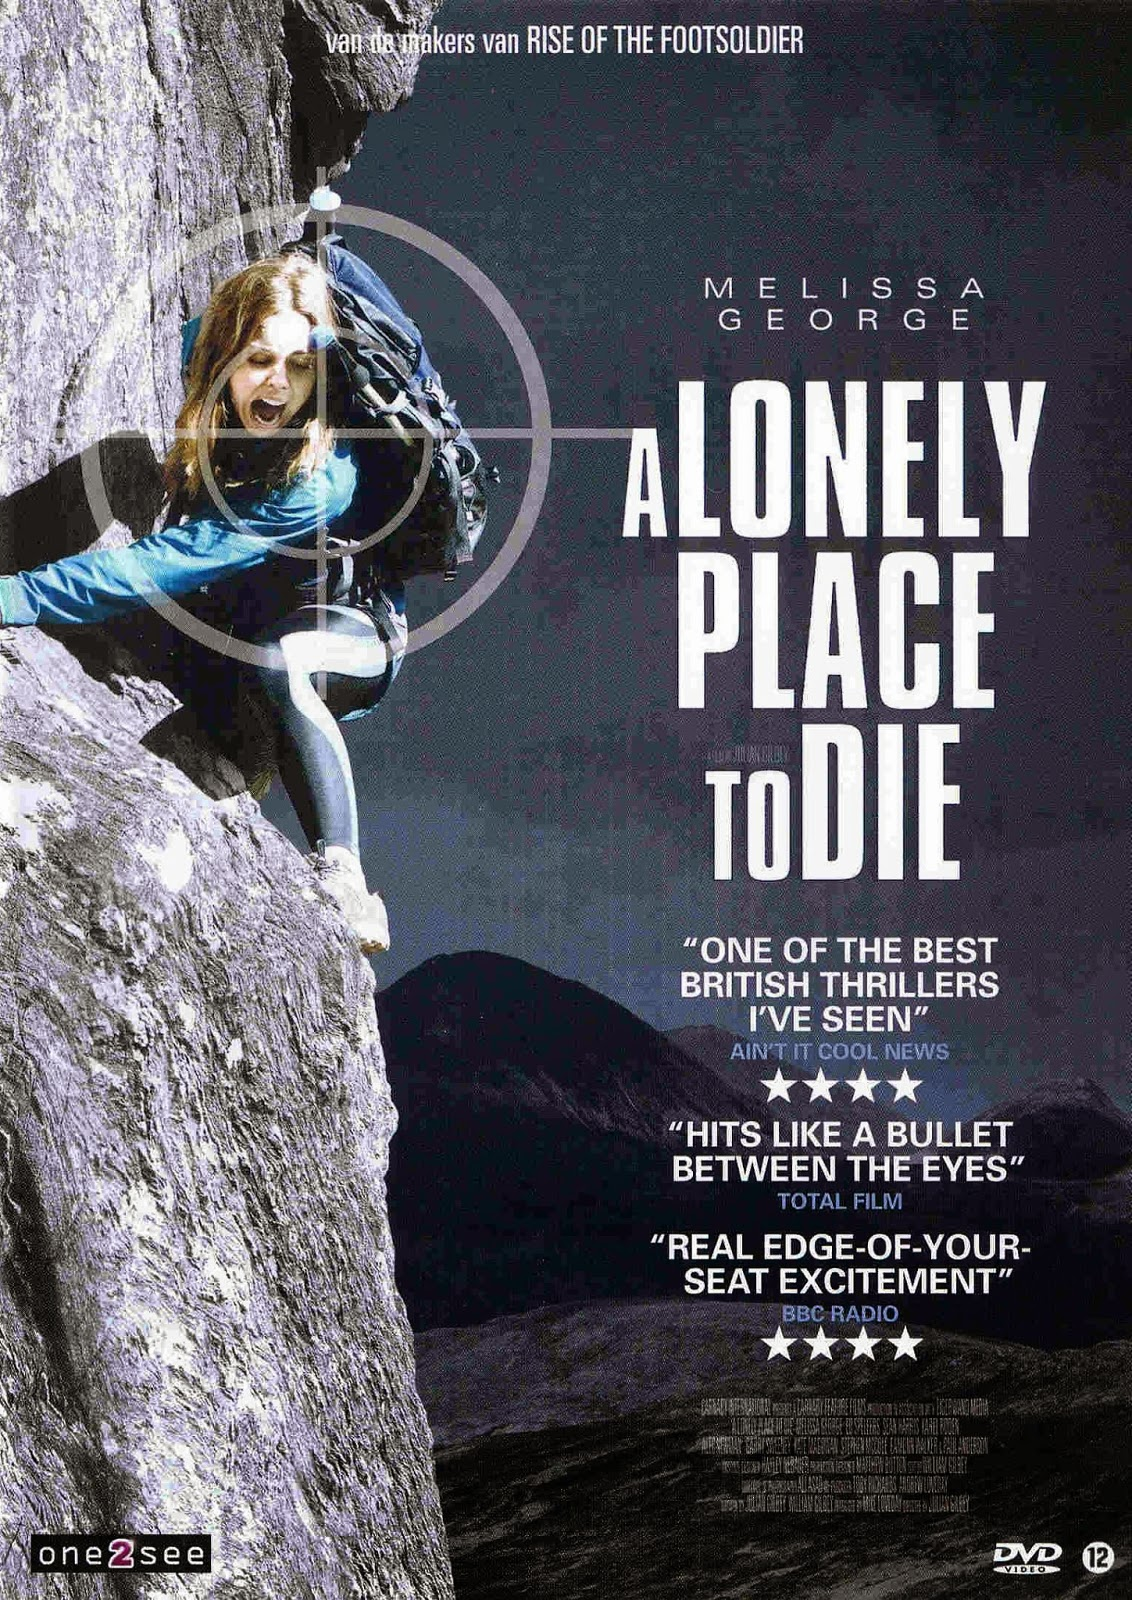 A Lonely Place to Die ฝ่านรกหุบเขาทมิฬ HD master พากย์ไทย